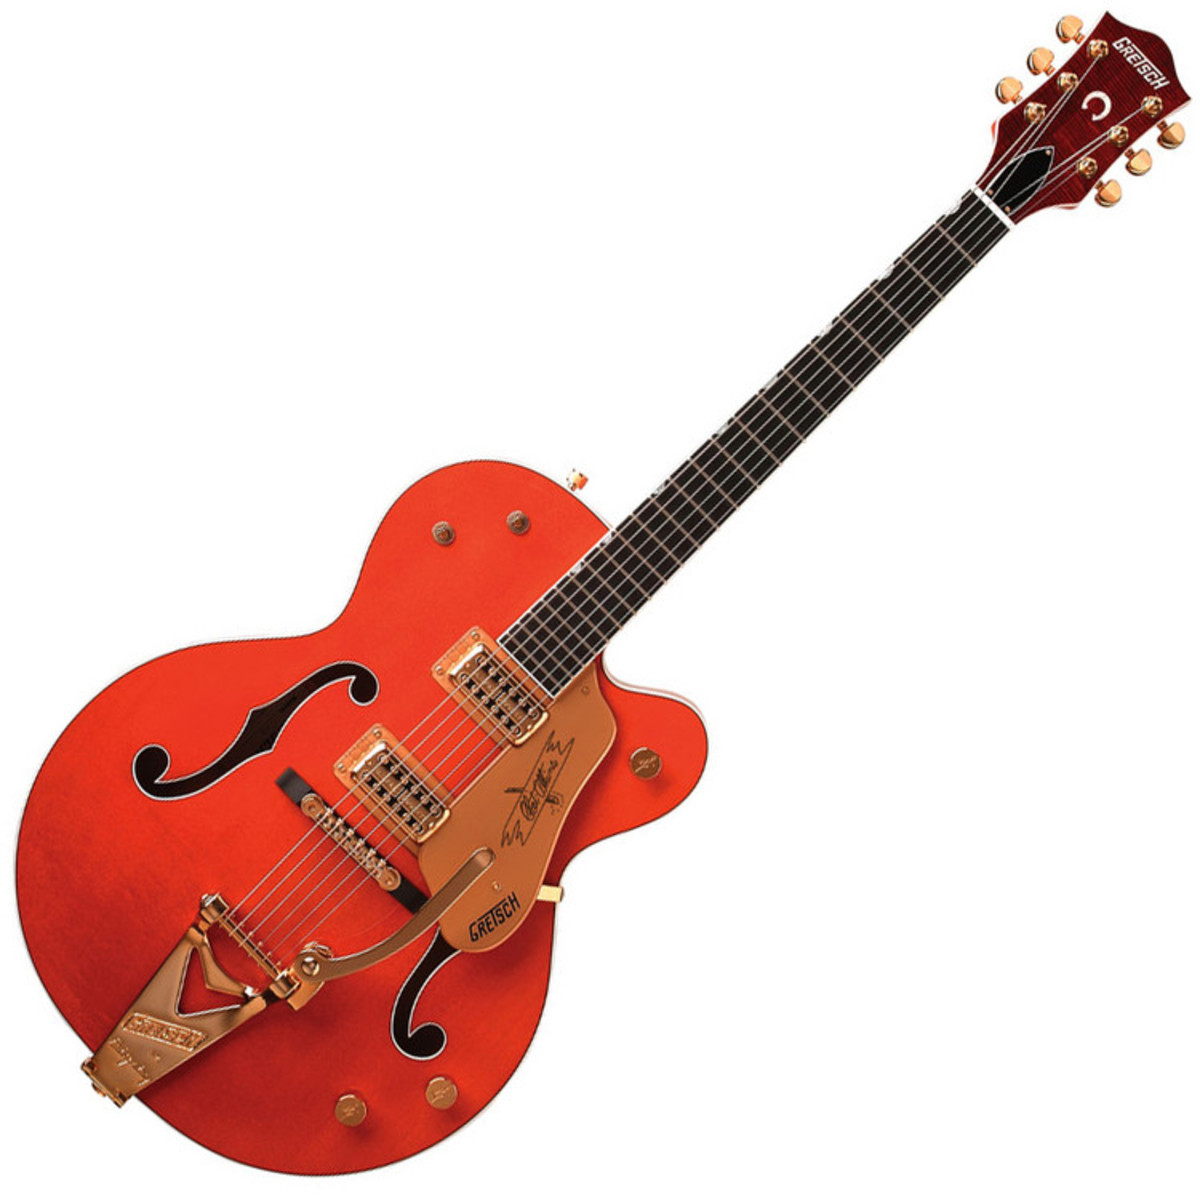 disc gretsch g6120 chet atkins hollow body guitar orange stain at gear4music. Black Bedroom Furniture Sets. Home Design Ideas